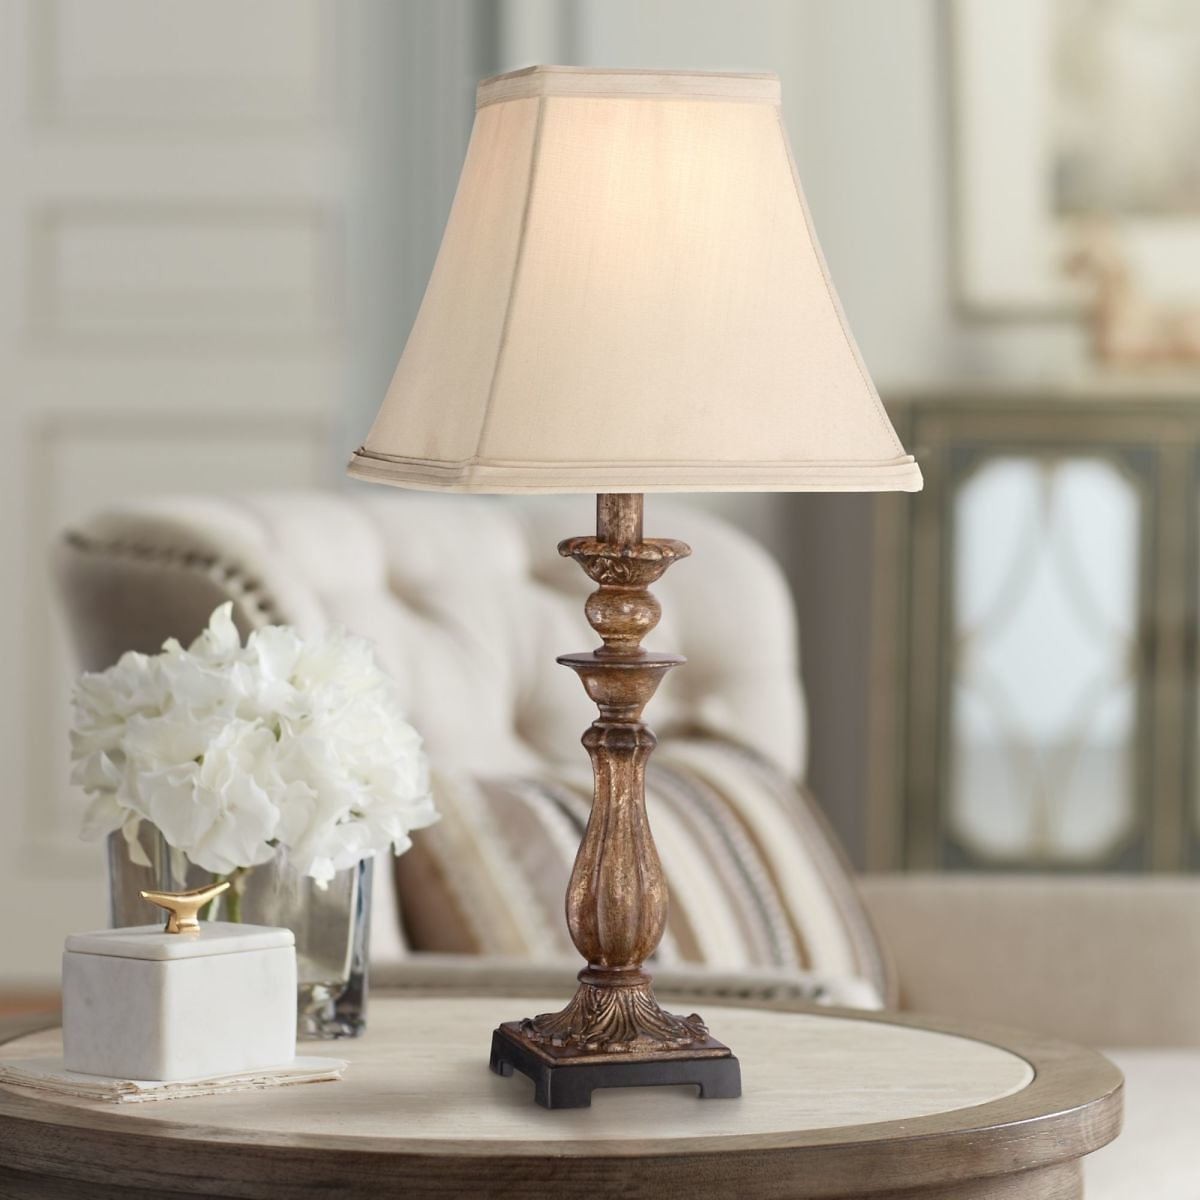 Regency Hill Cottage Accent Table Lamp